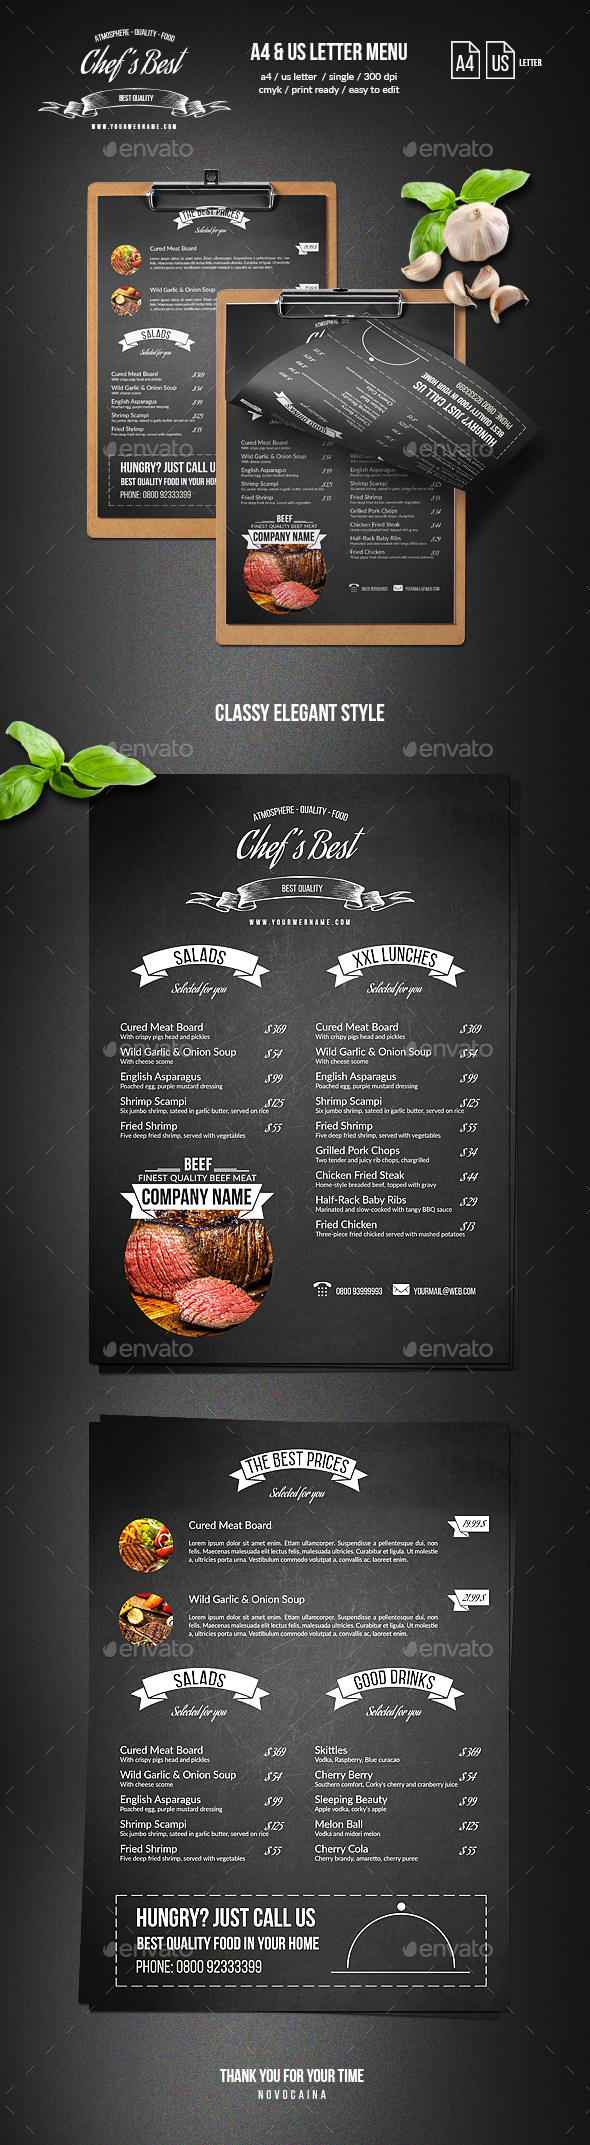 Chef's Restaurant Menu - A4 and US Letter - Single Page - Food Menus Print Templates